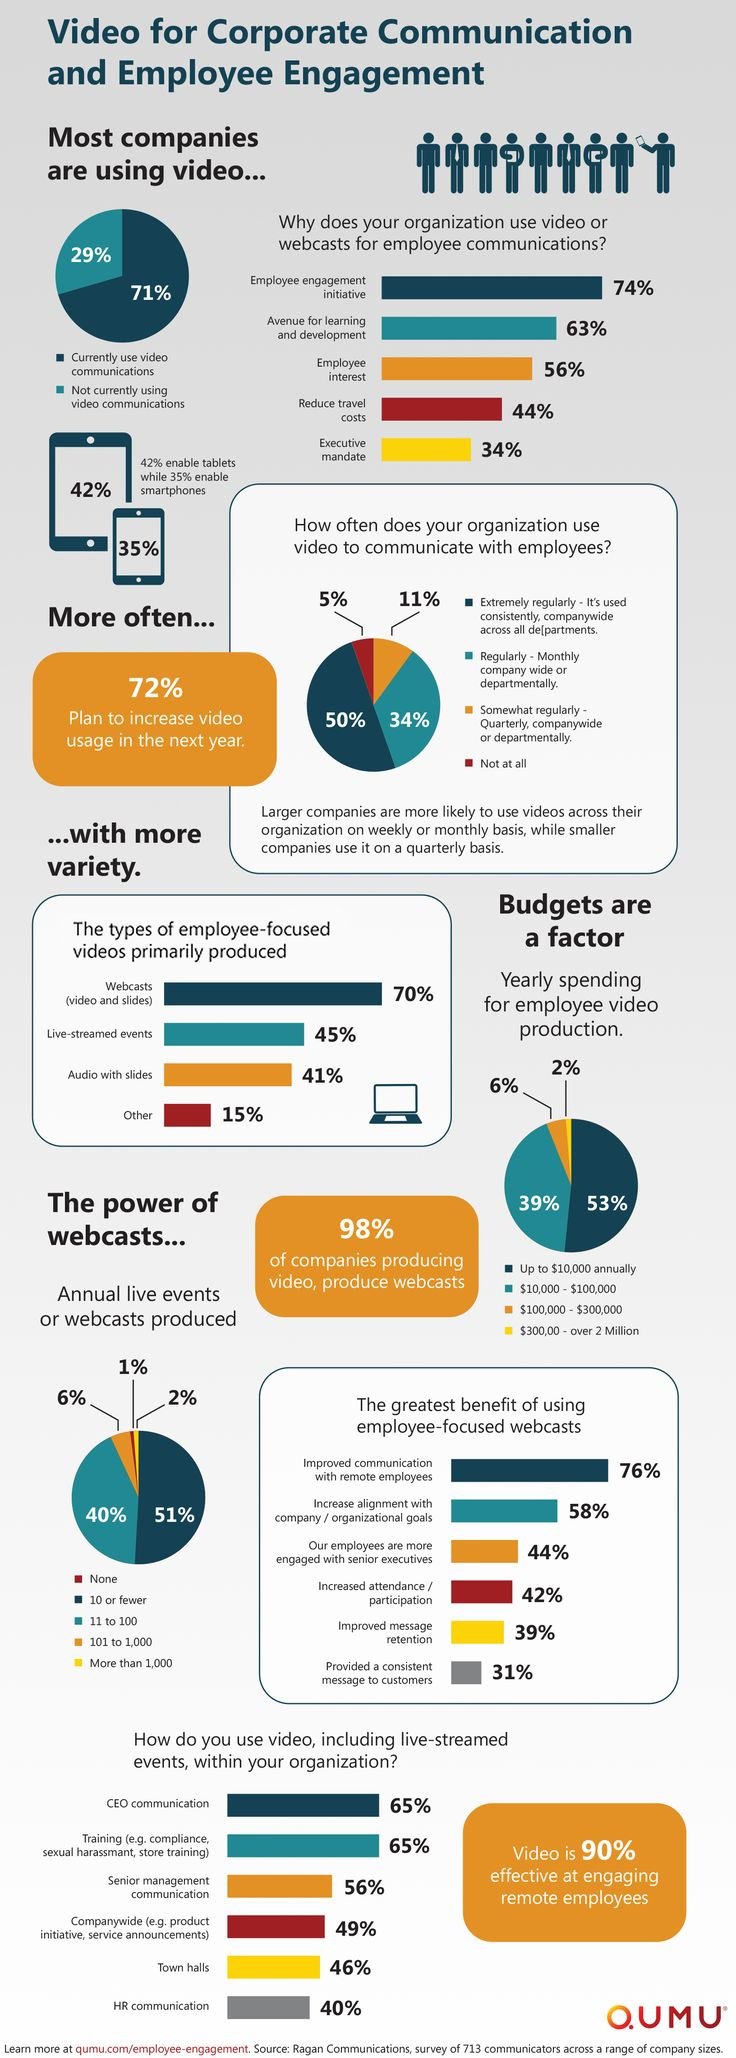 employee engagement survey results in infographic